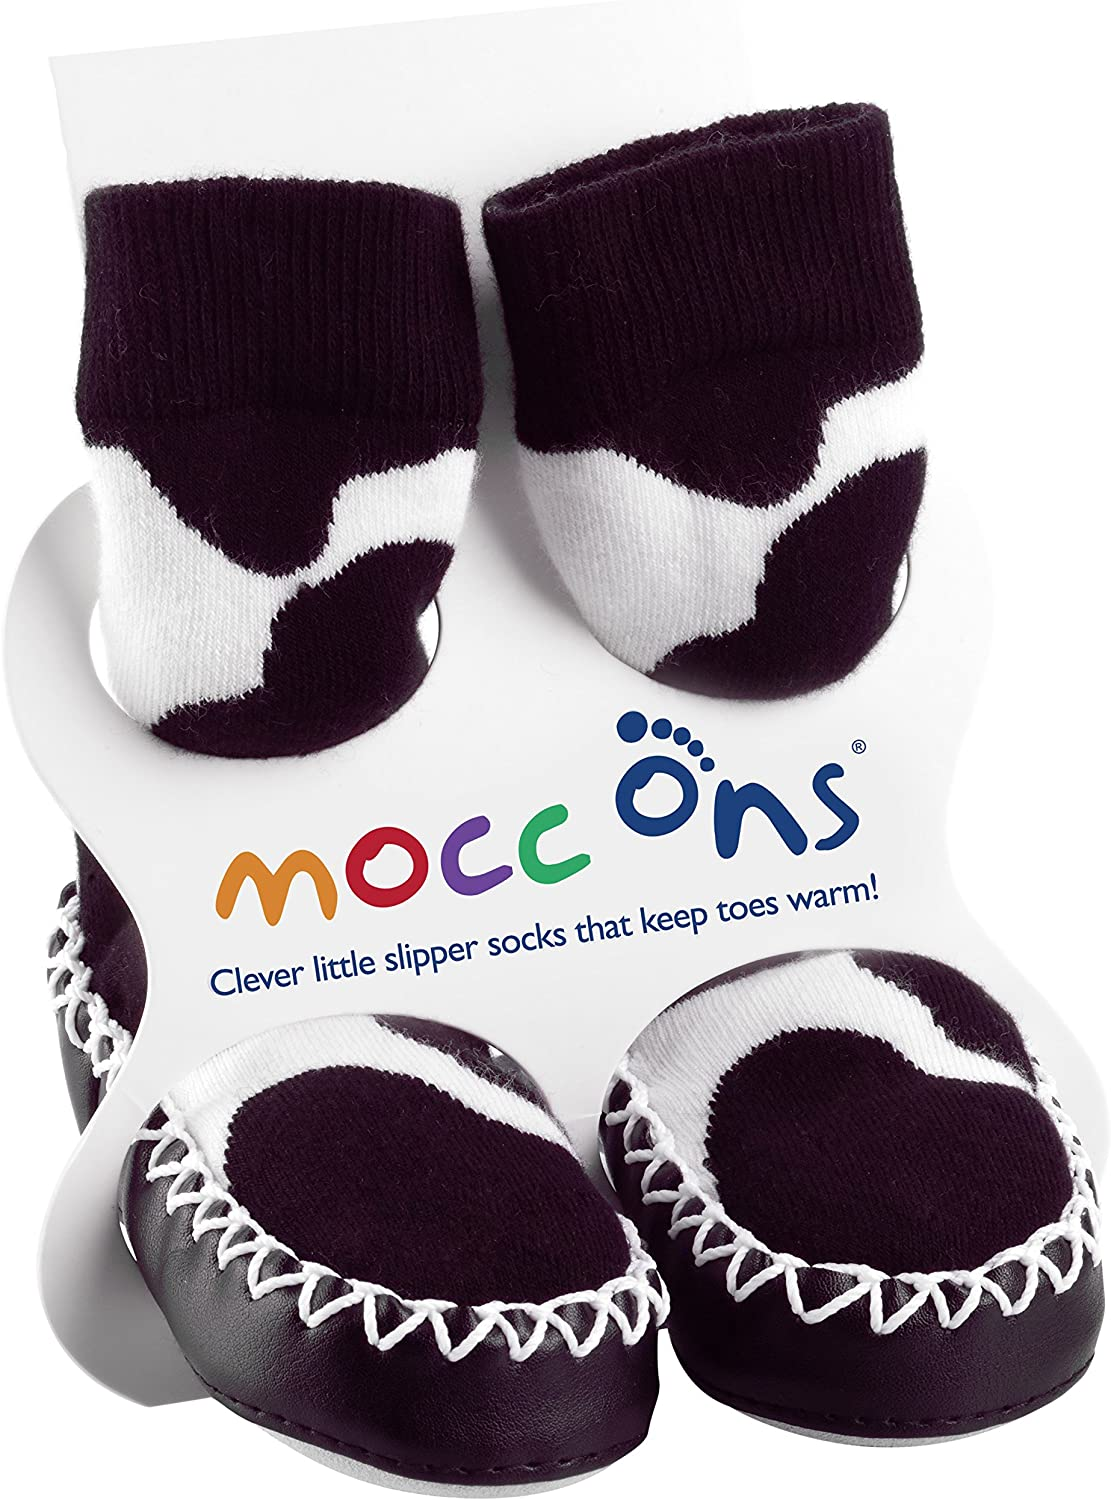 Mocc Ons Moccasin Style Slipper Socks Cowgirl